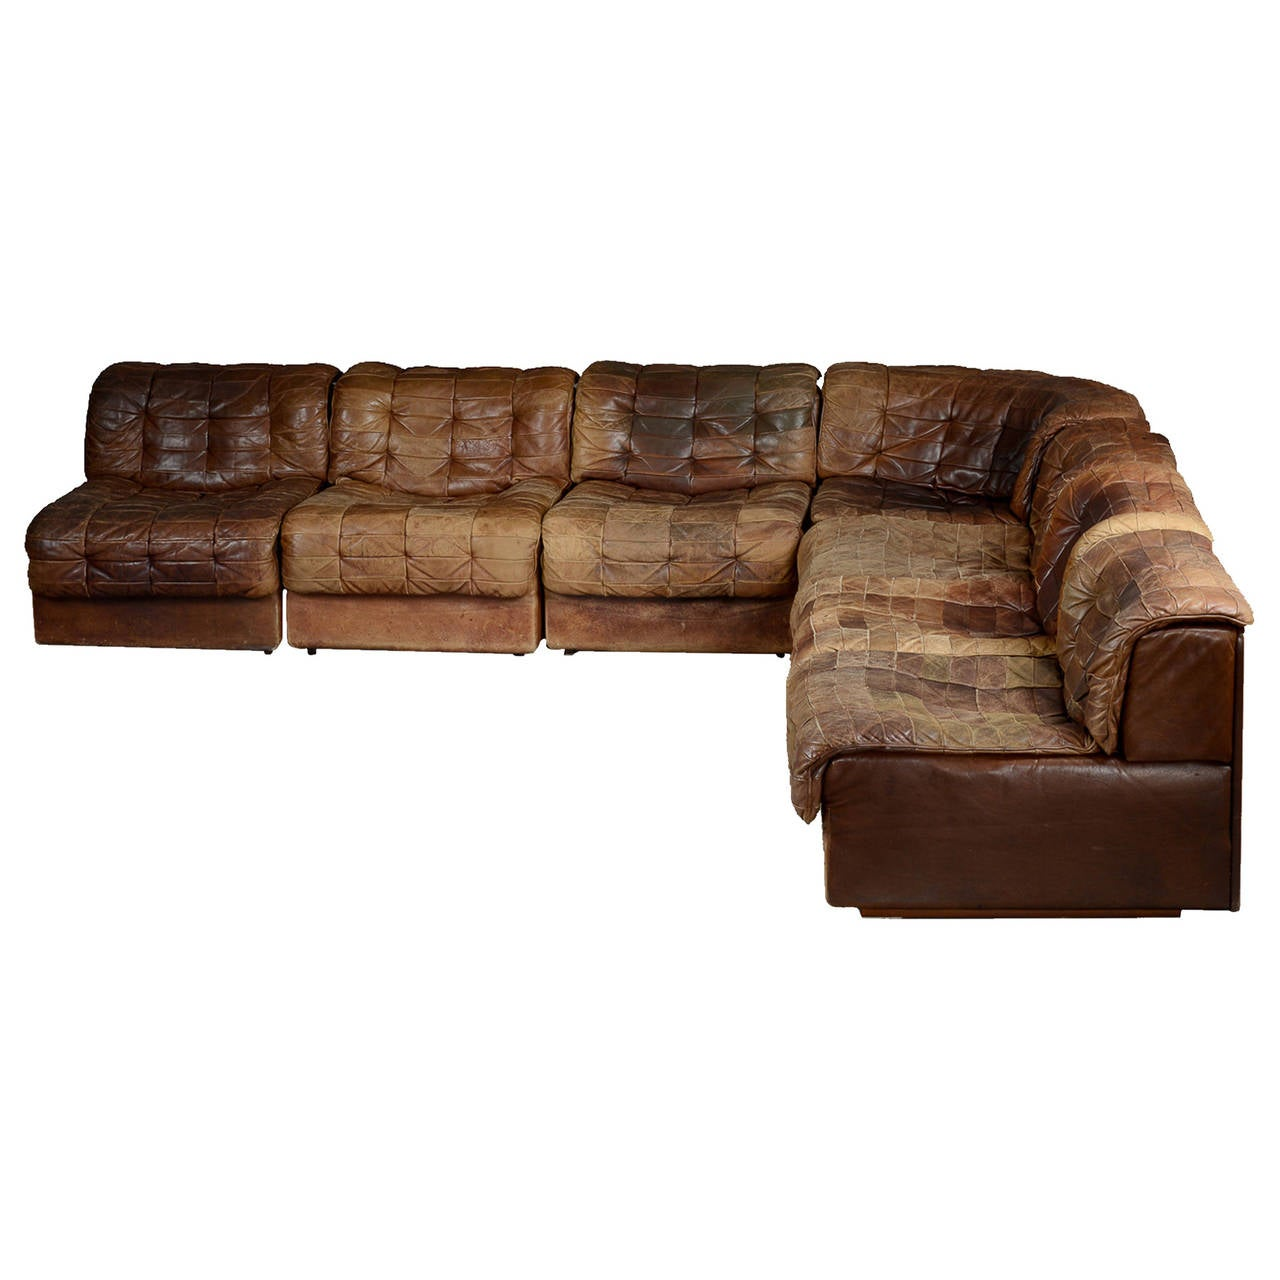 Seven-Section Leather Patchwork Sofa by De Sede at 1stdibs